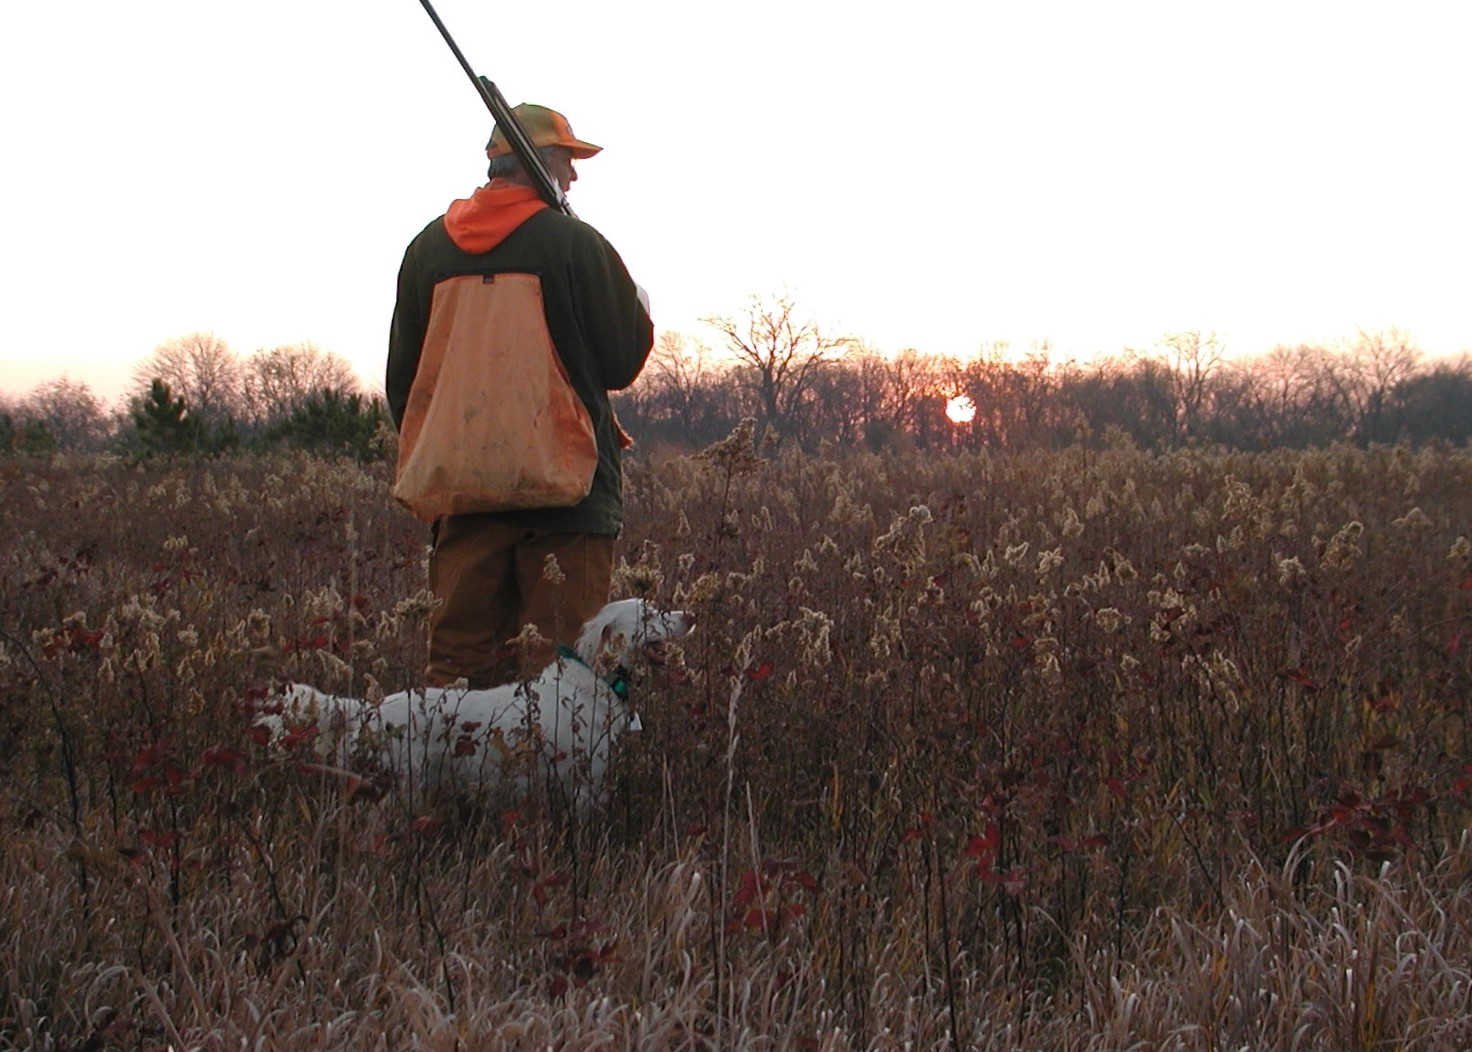 OtisKirchhoefer and his Dixie (one of my favorite dogs I have hunted with) look into the rising sun a decade ago on opening weekend of pheasant hunting in Illinois; pheasant season opens Nov. 6. Credit: Dale Bowman